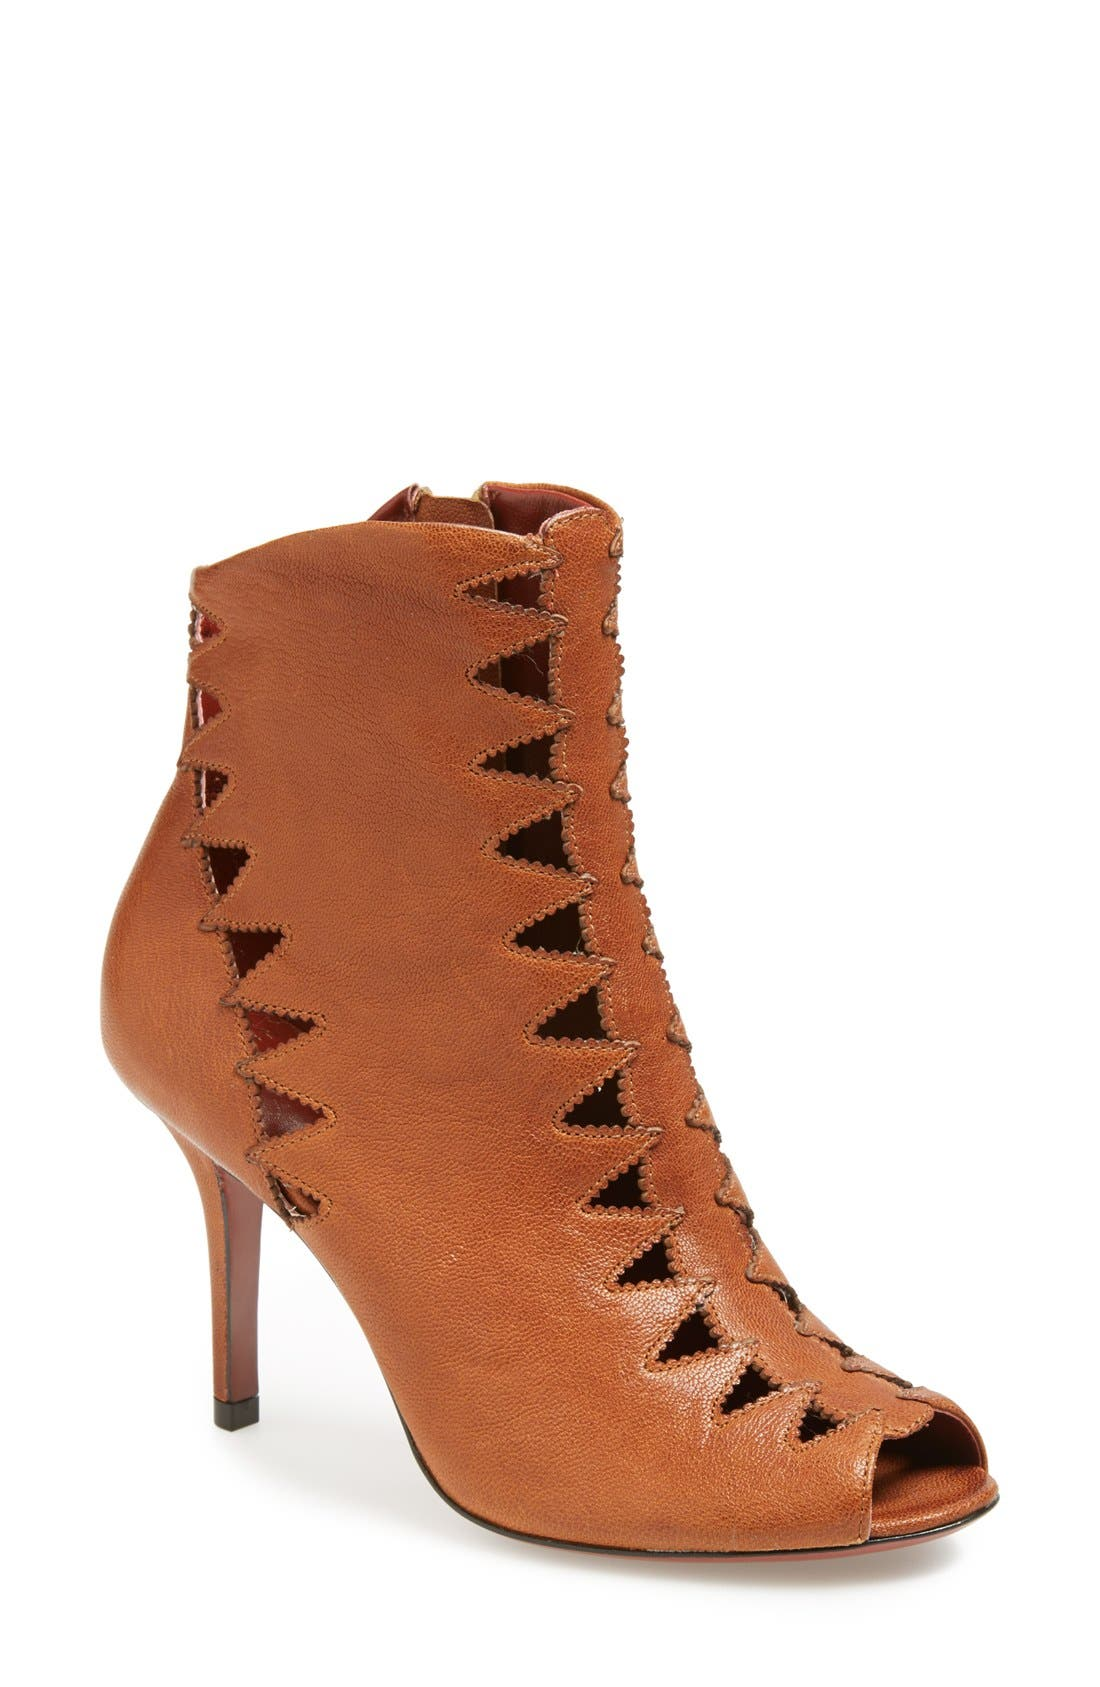 Main Image - Aerin 'Carine' Peep Toe Leather Bootie (Women)